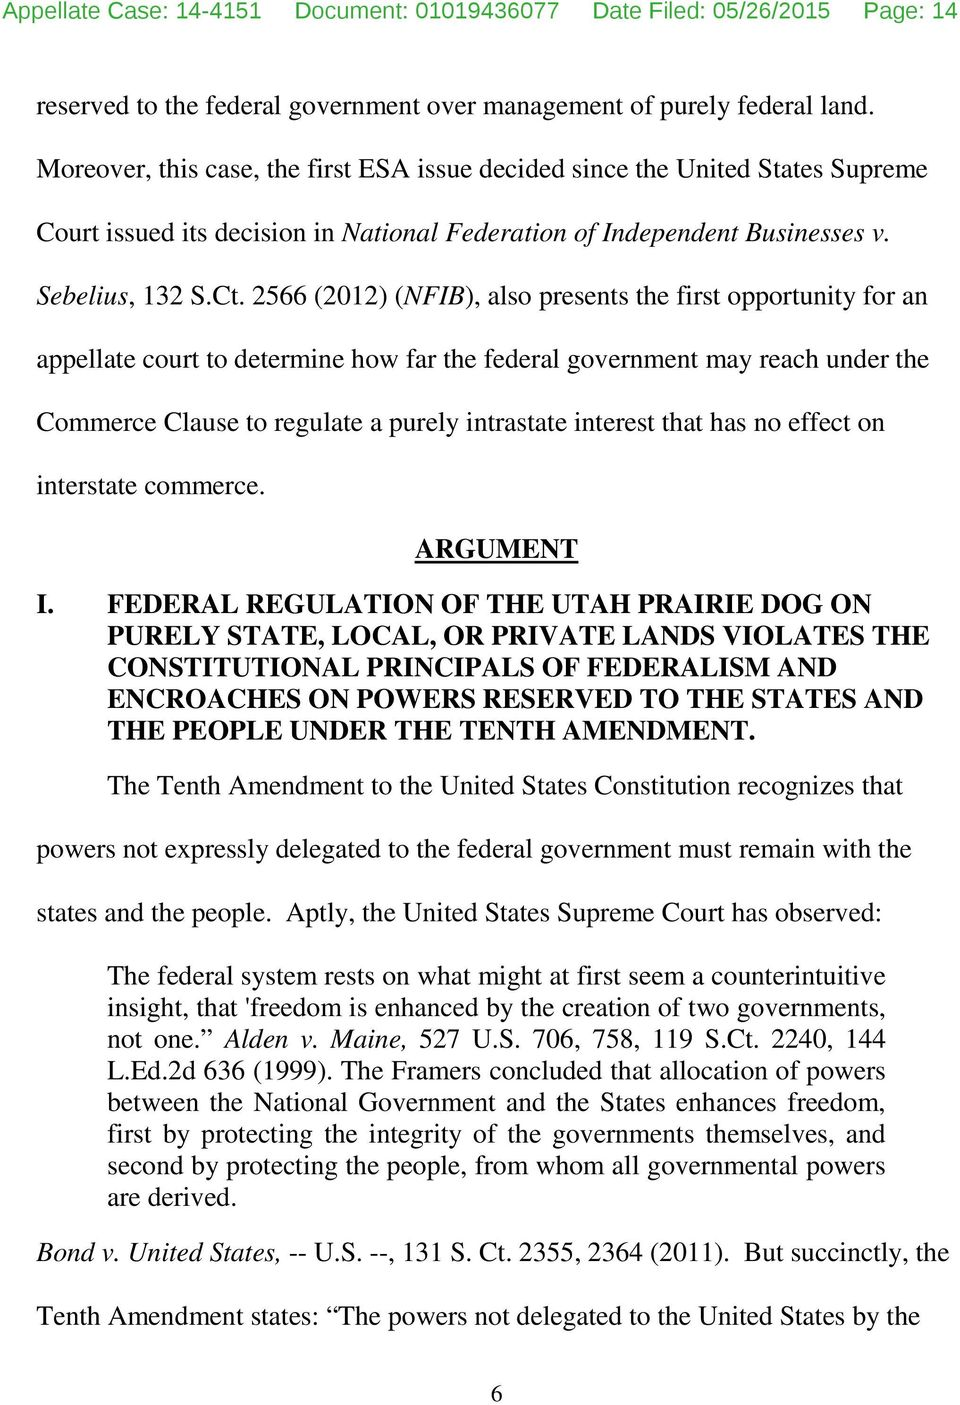 2566 (2012) (NFIB), also presents the first opportunity for an appellate court to determine how far the federal government may reach under the Commerce Clause to regulate a purely intrastate interest